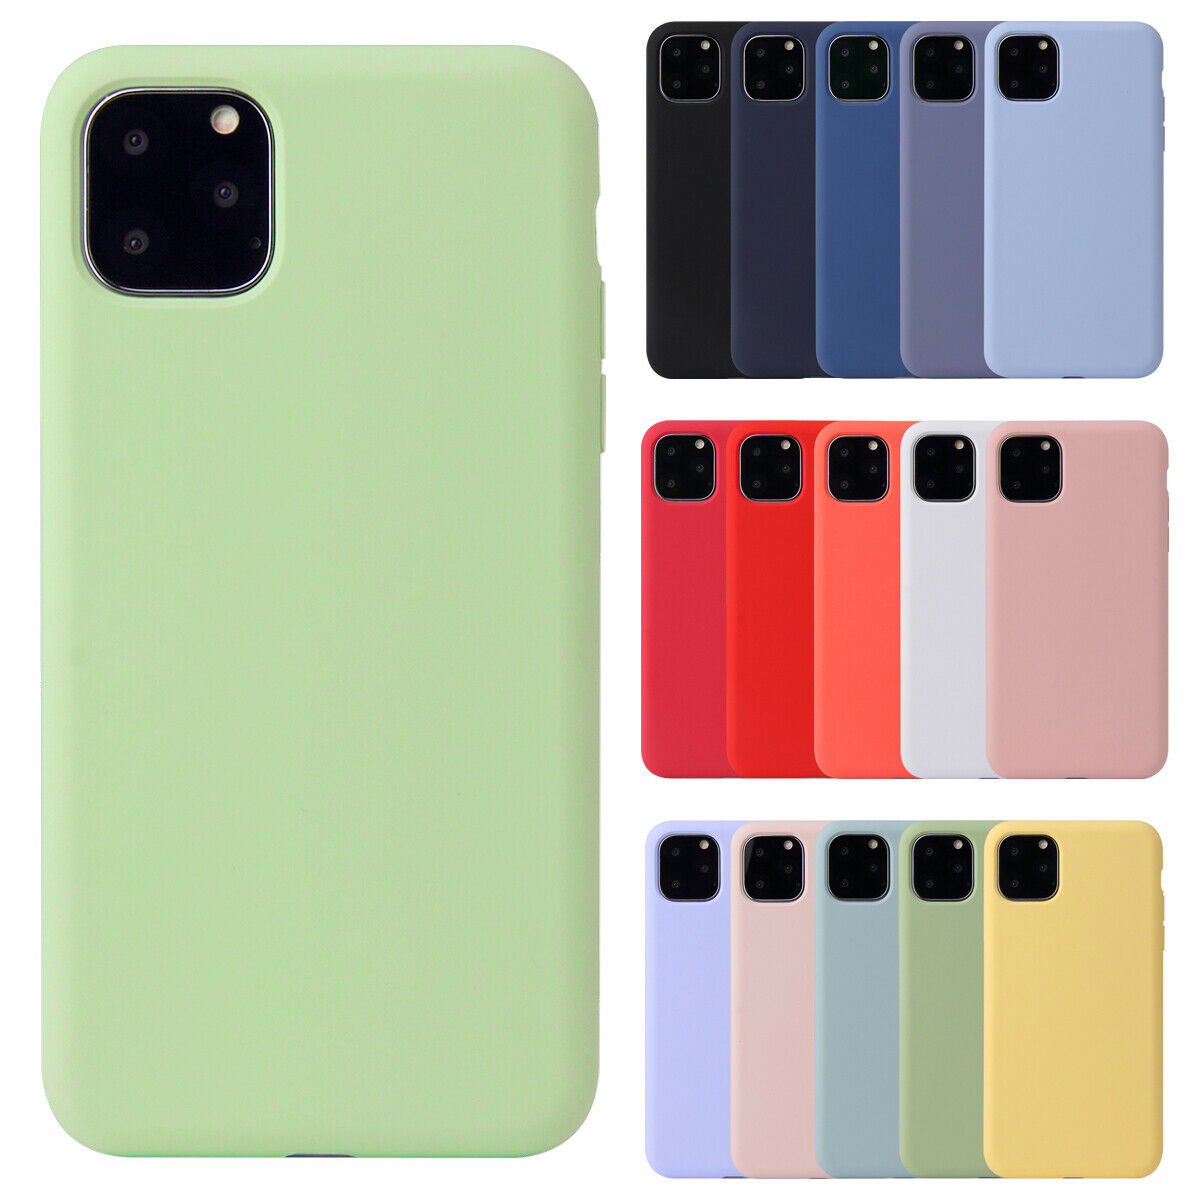 Silikonový kryt iMore Silicone Case na iPhone 11 Pro Max